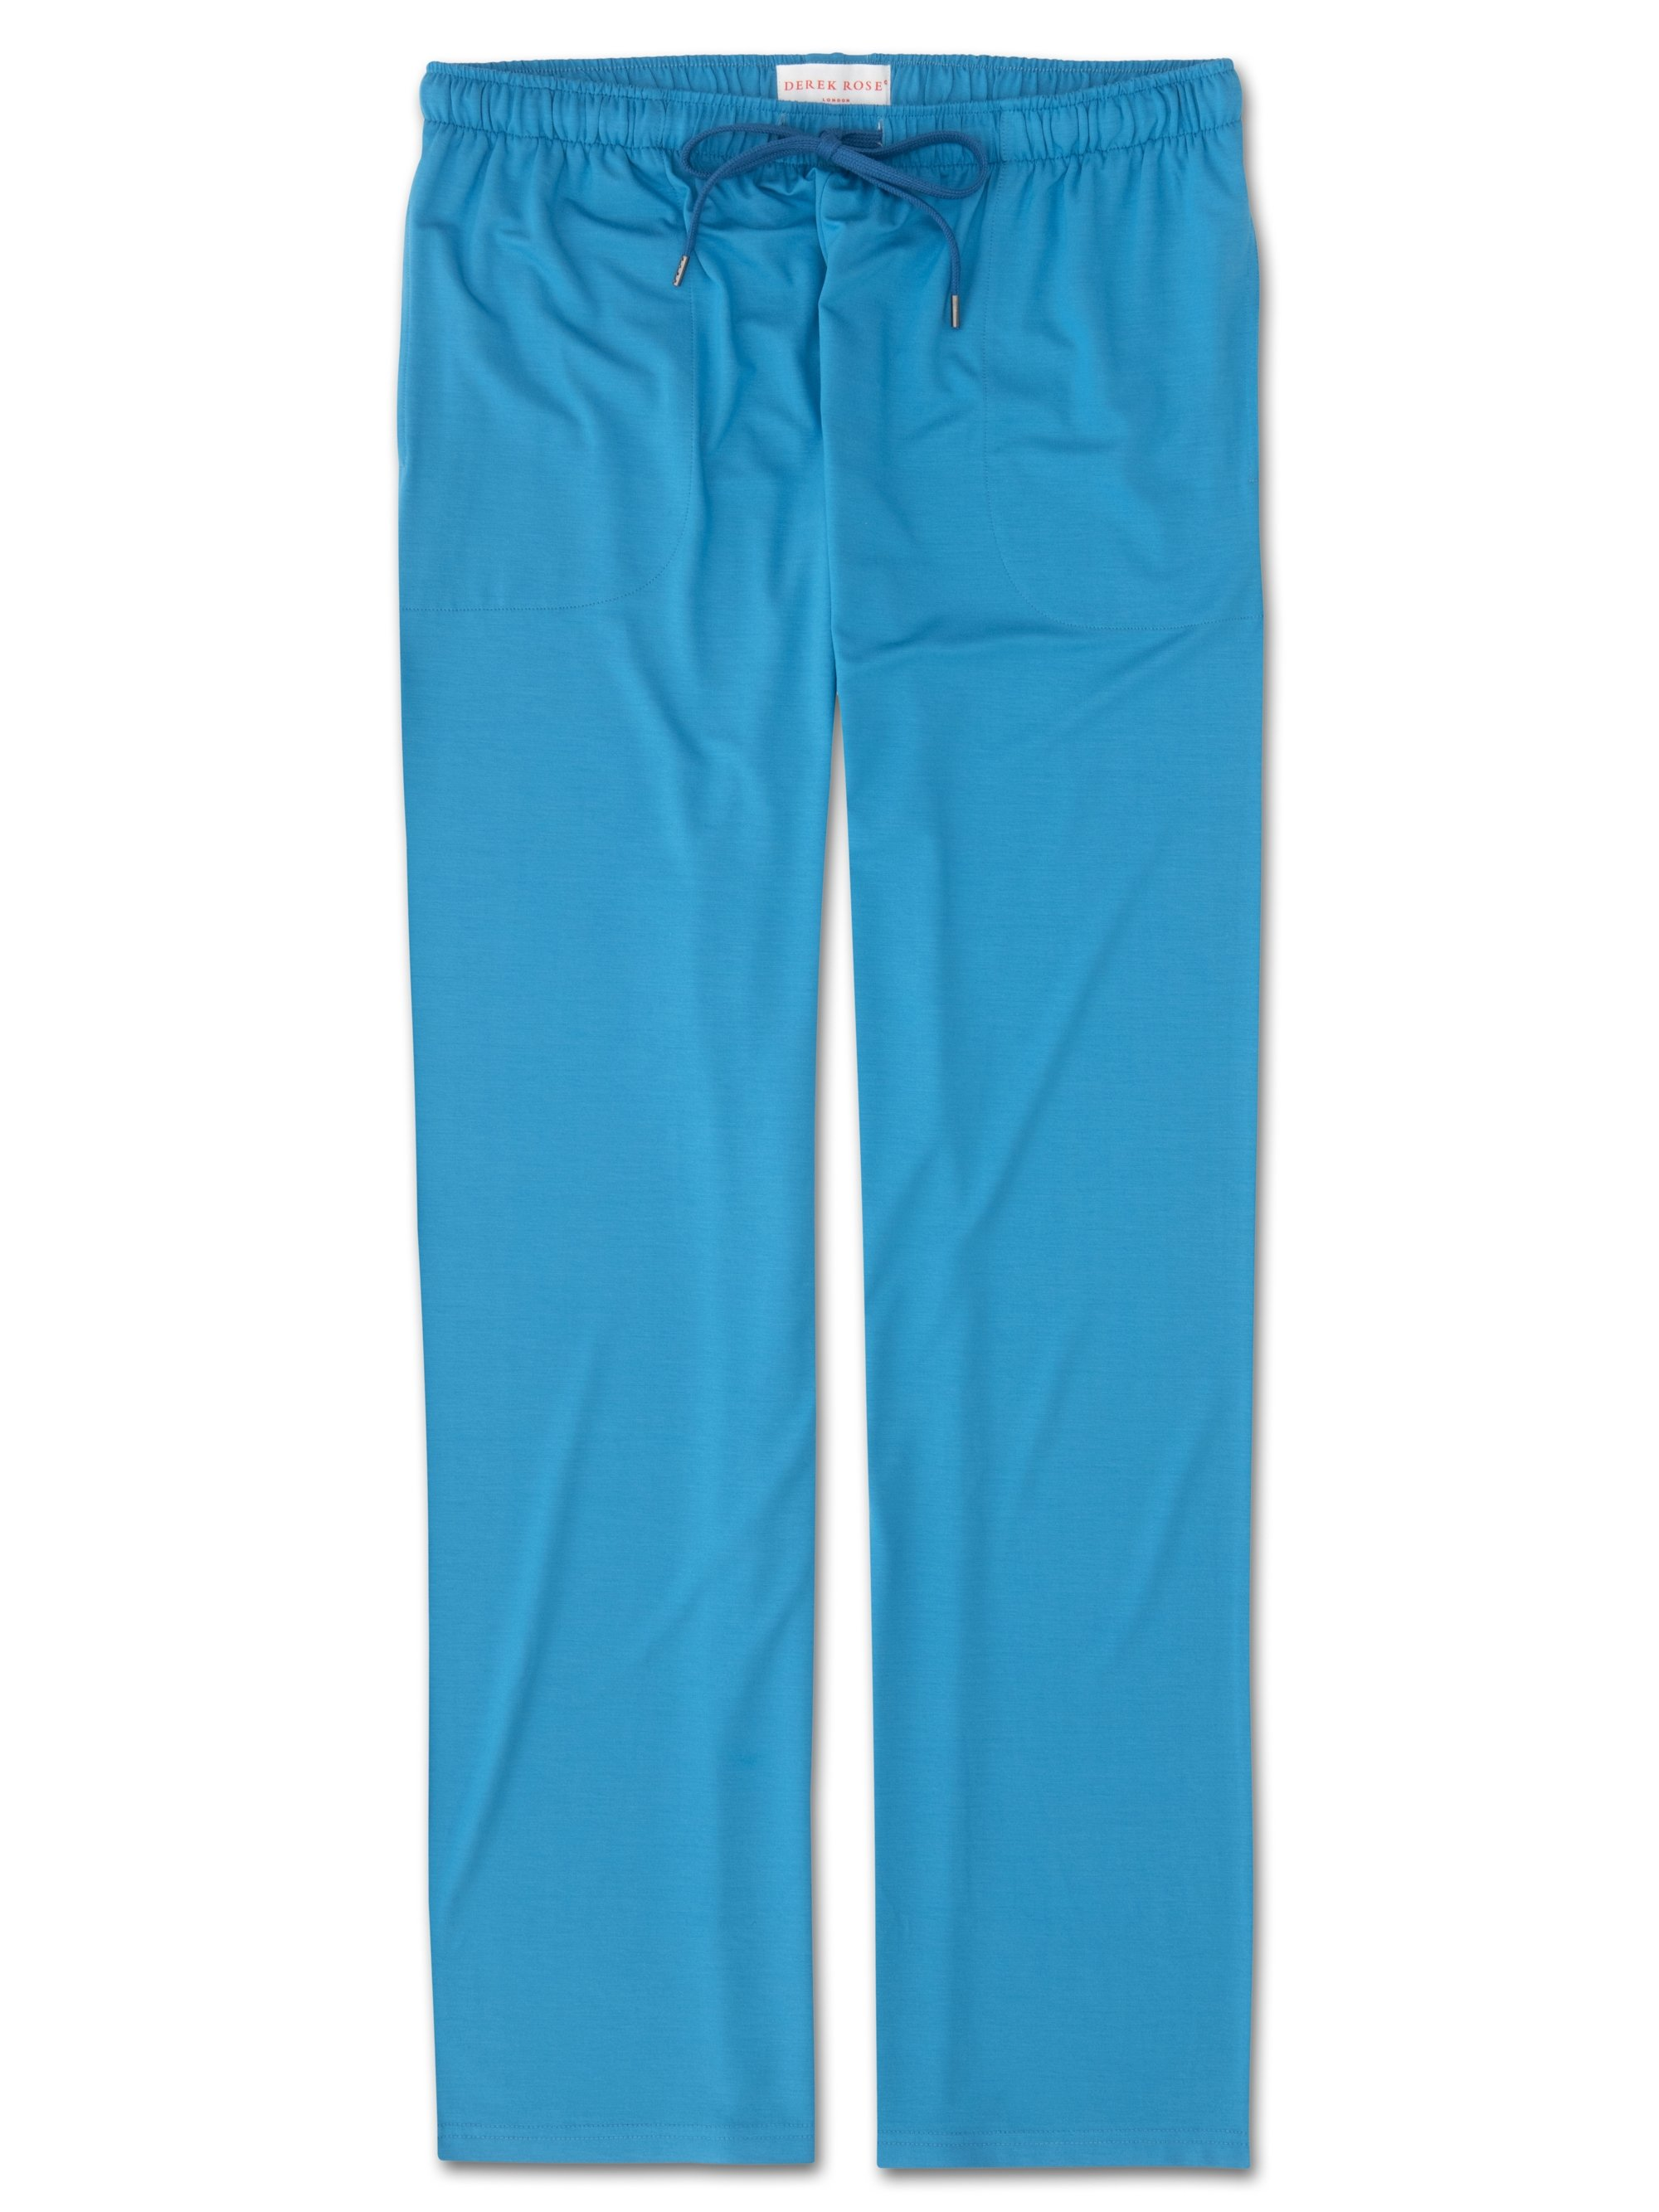 Men's Jersey Trousers Basel 6 Micro Modal Stretch Blue